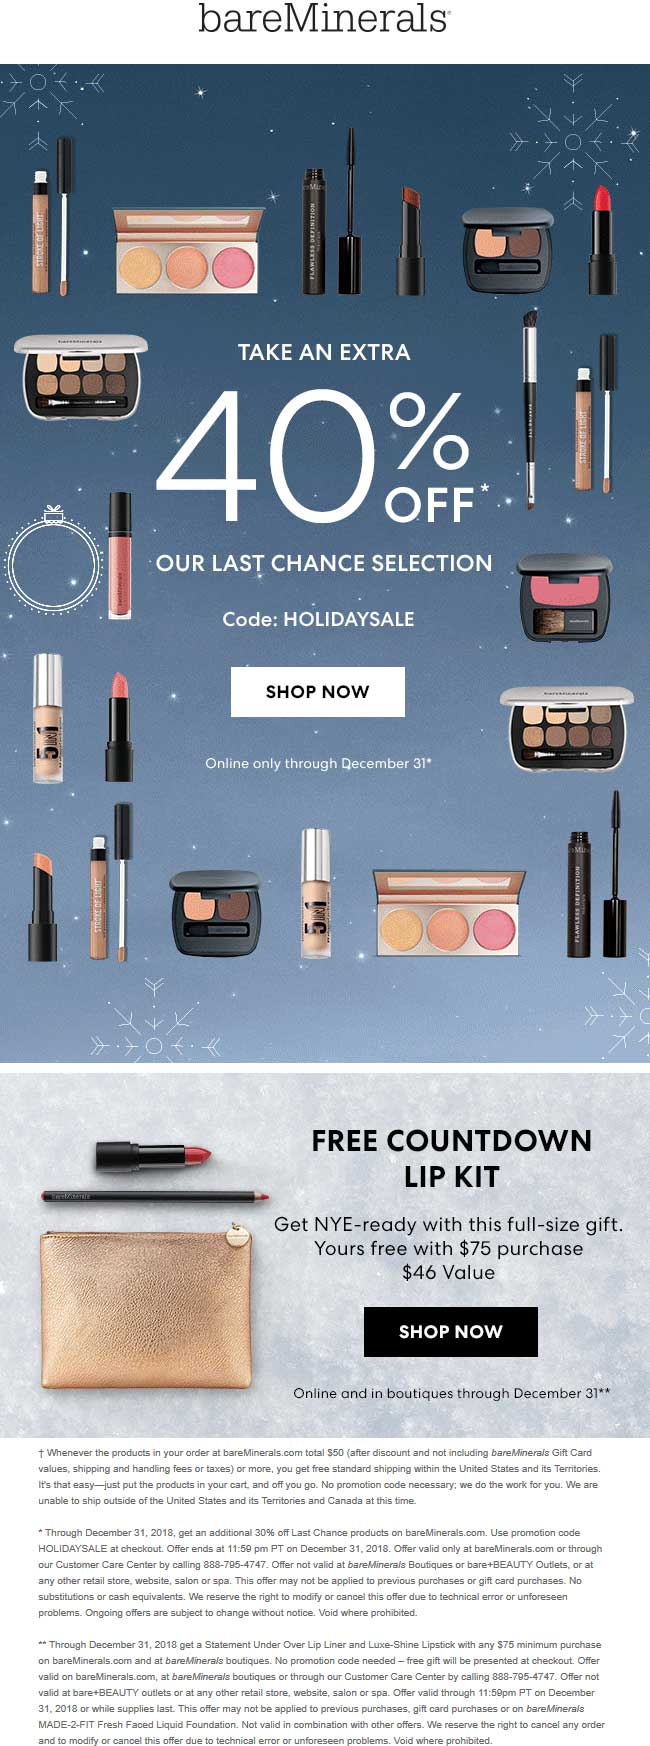 bareMinerals coupons & promo code for [April 2020]